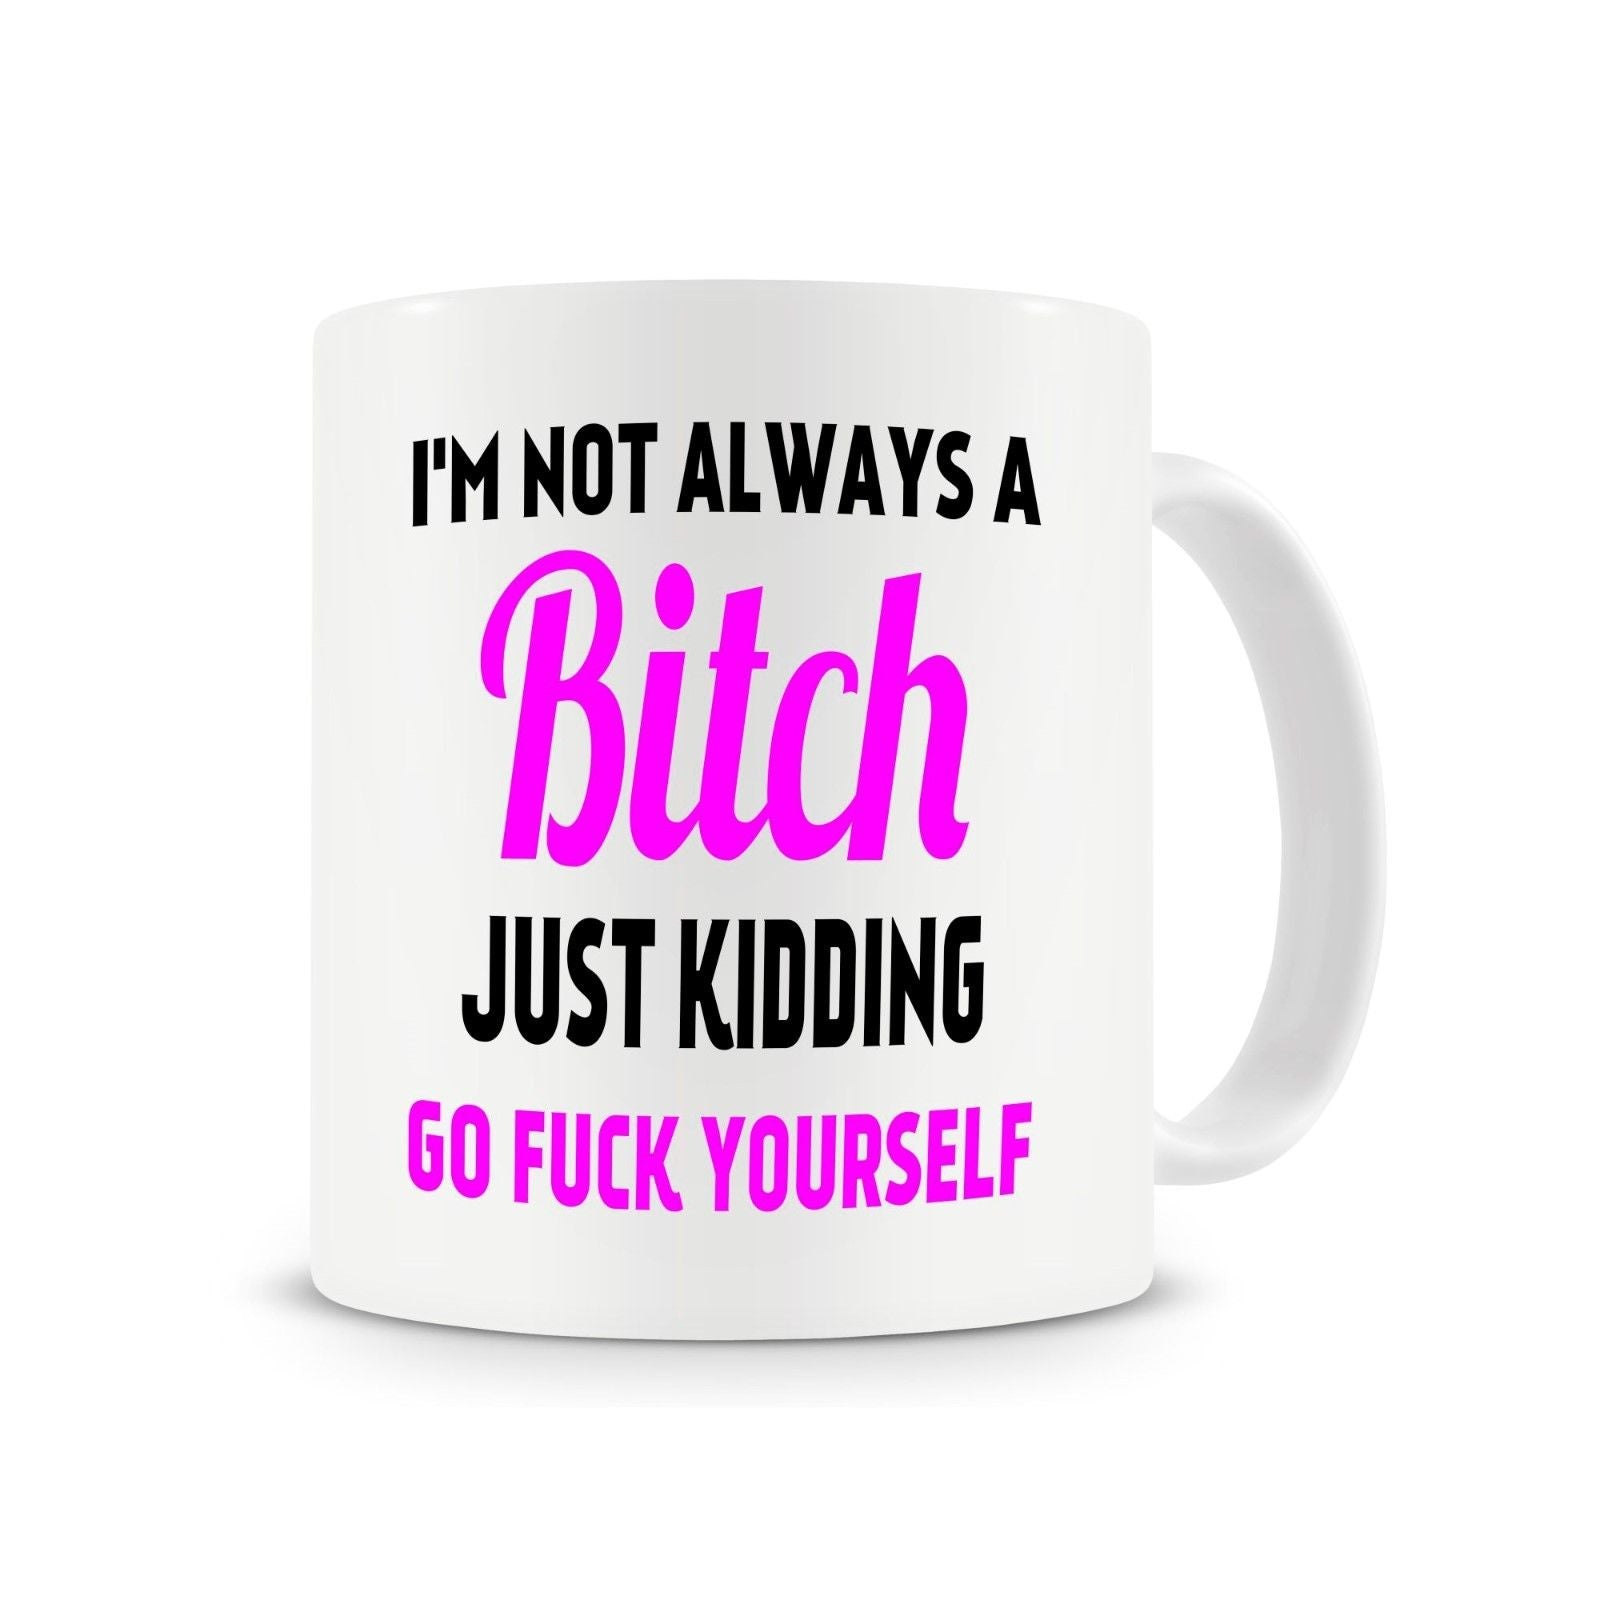 I'm Not Always A Bitch Mug - Caring Collections